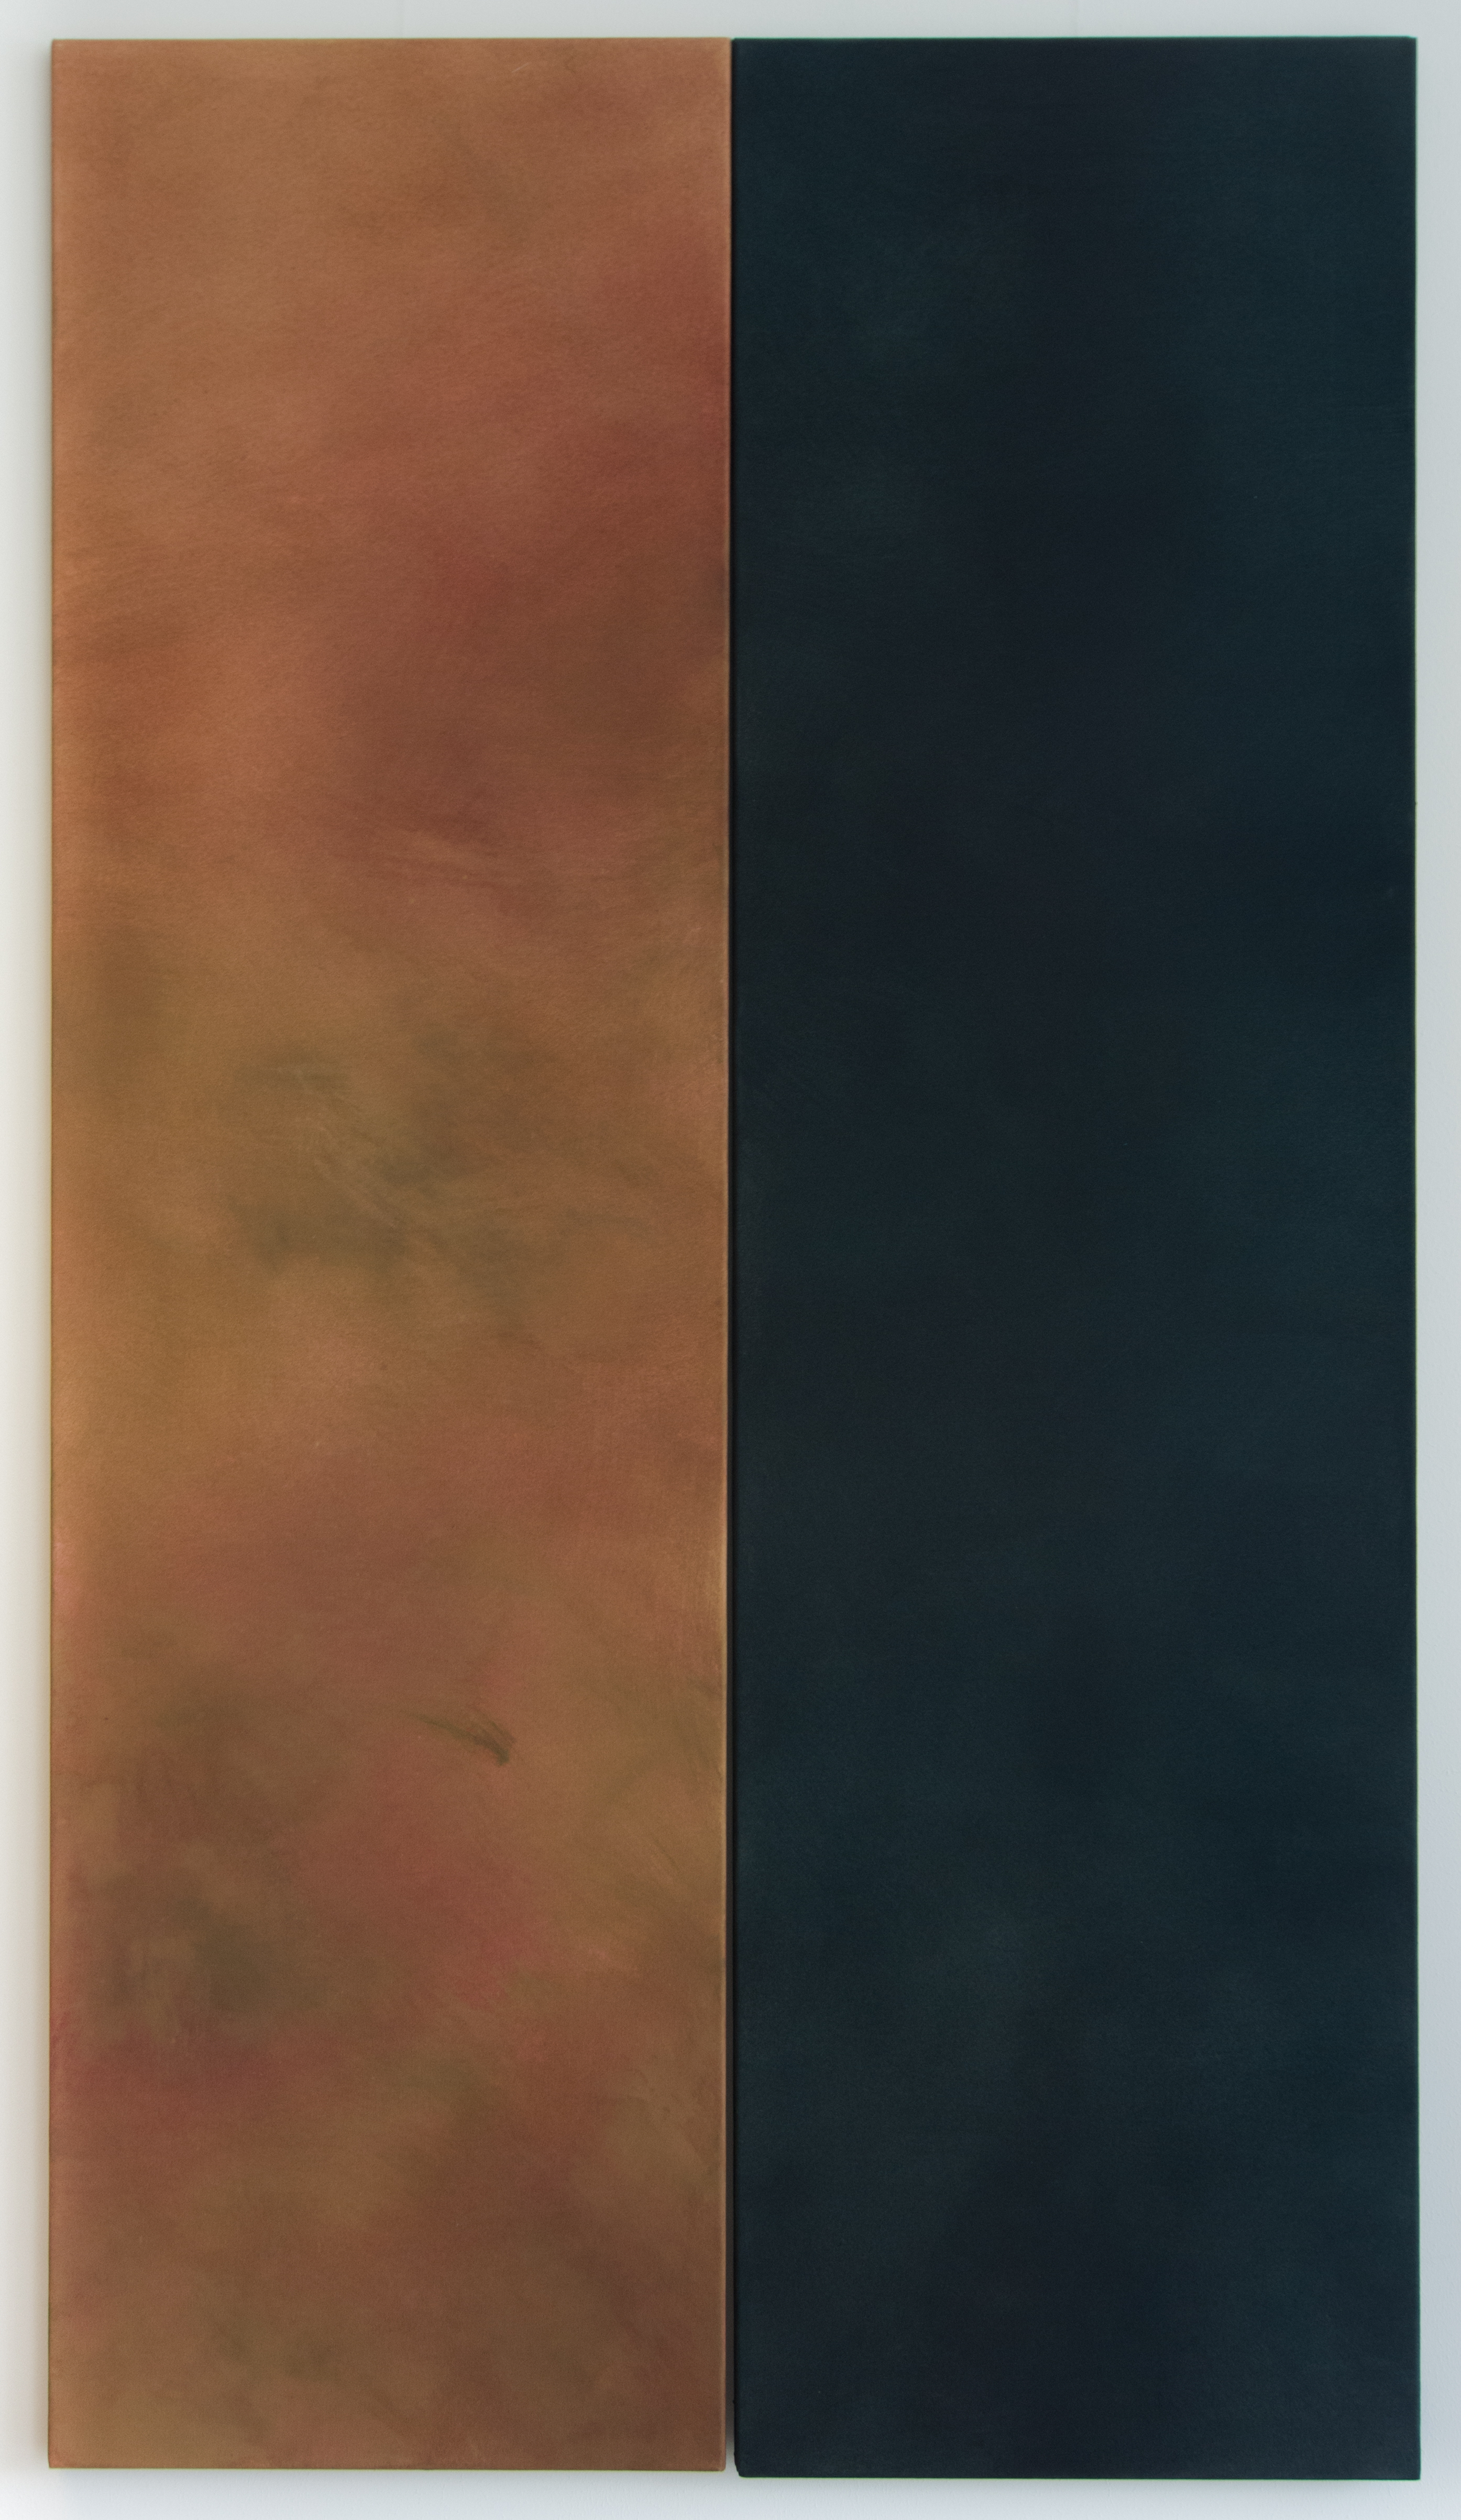 <p><strong>Colours of Scotland 6</strong><br />Punic wax on canvas, 2x    50x180 cm</p>